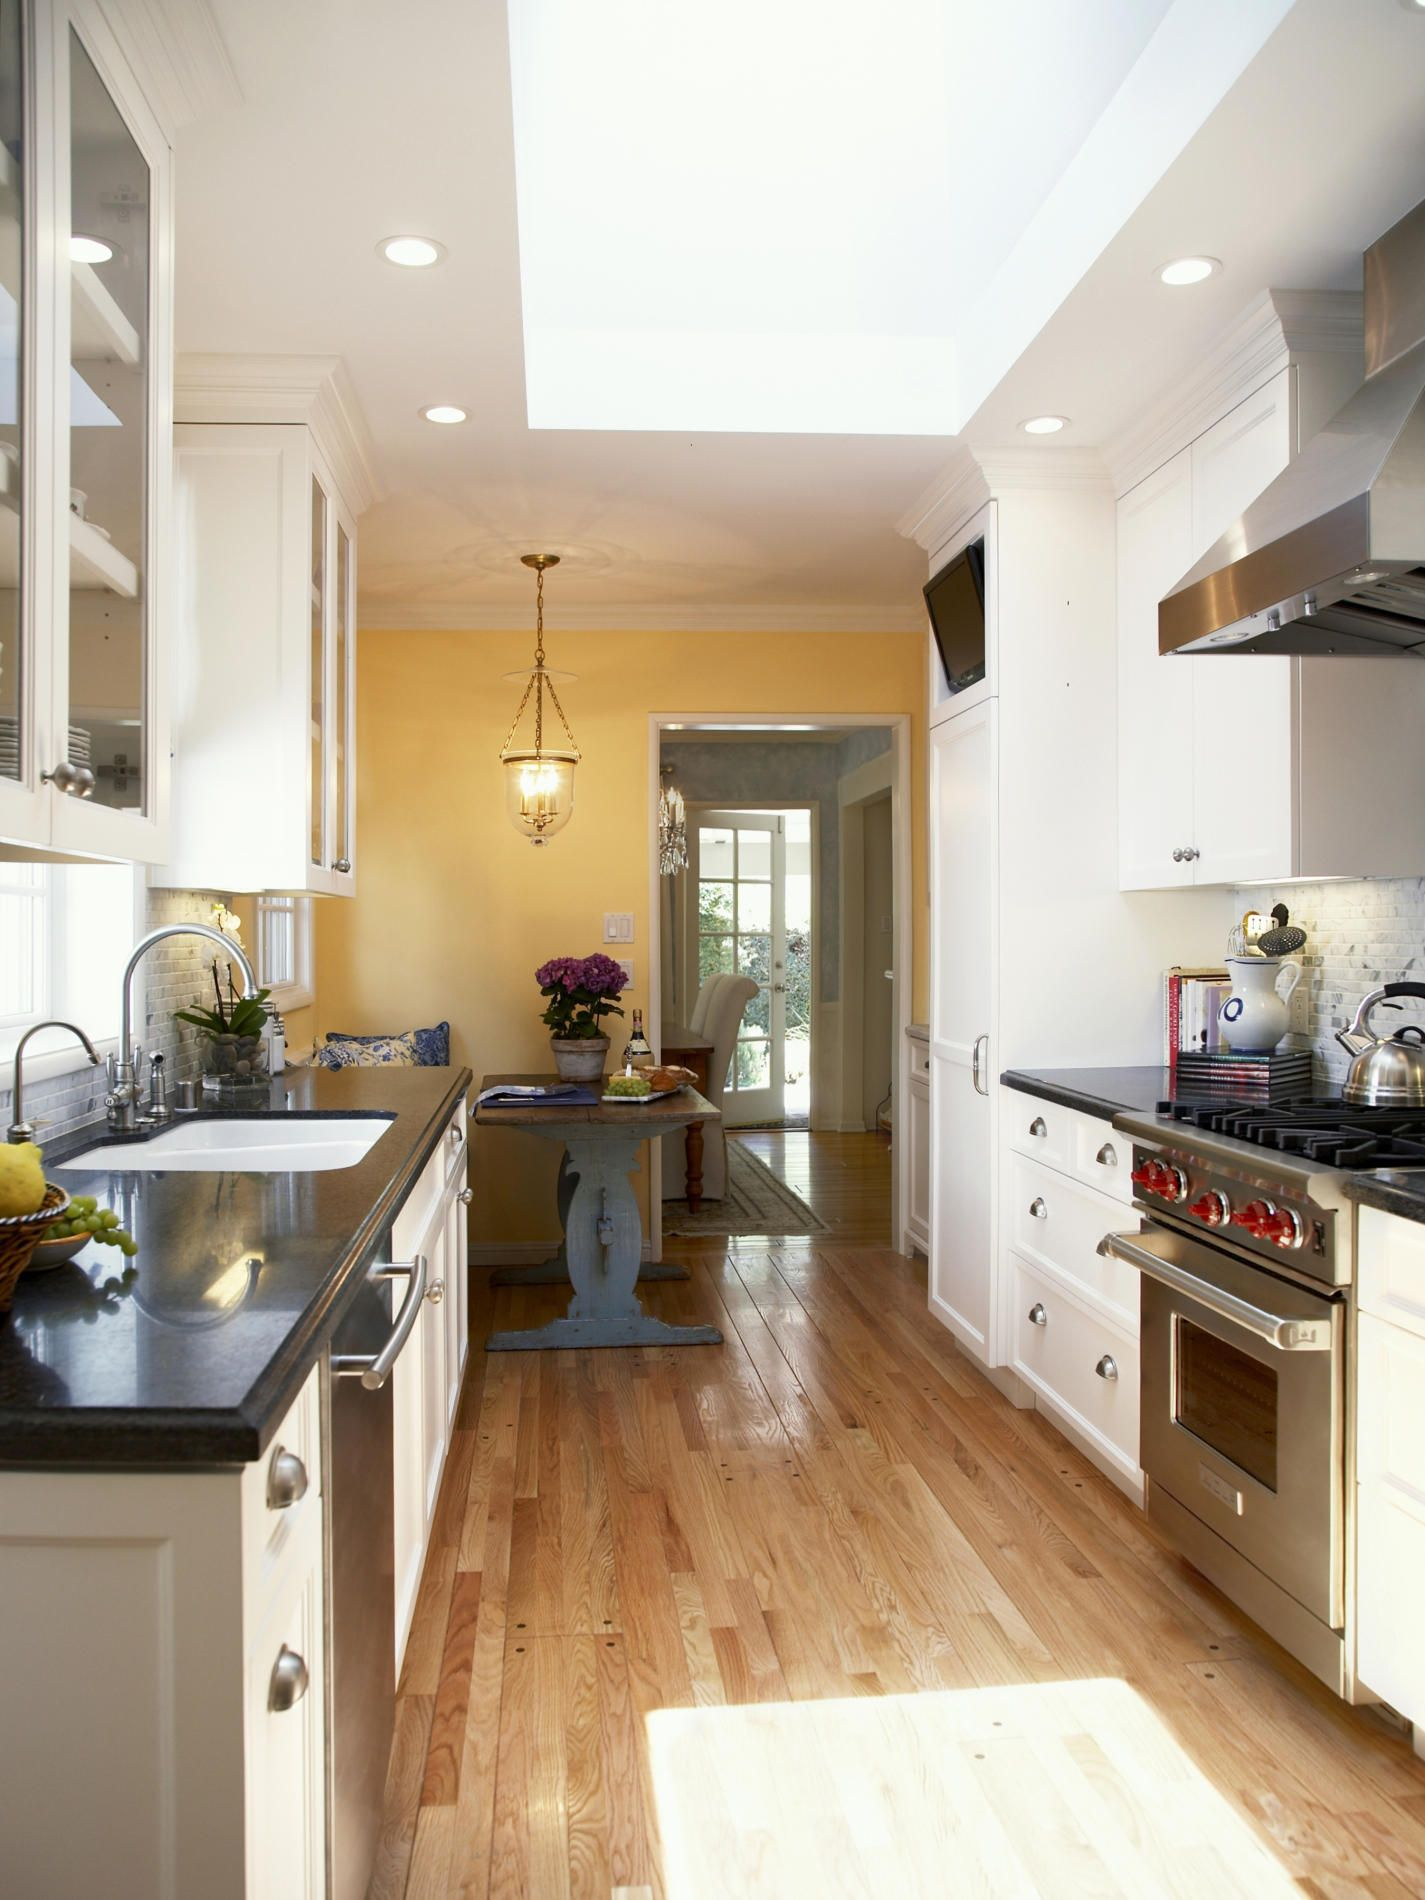 Picture of Small Galley Kitchen Remodel   Galley kitchen design ...